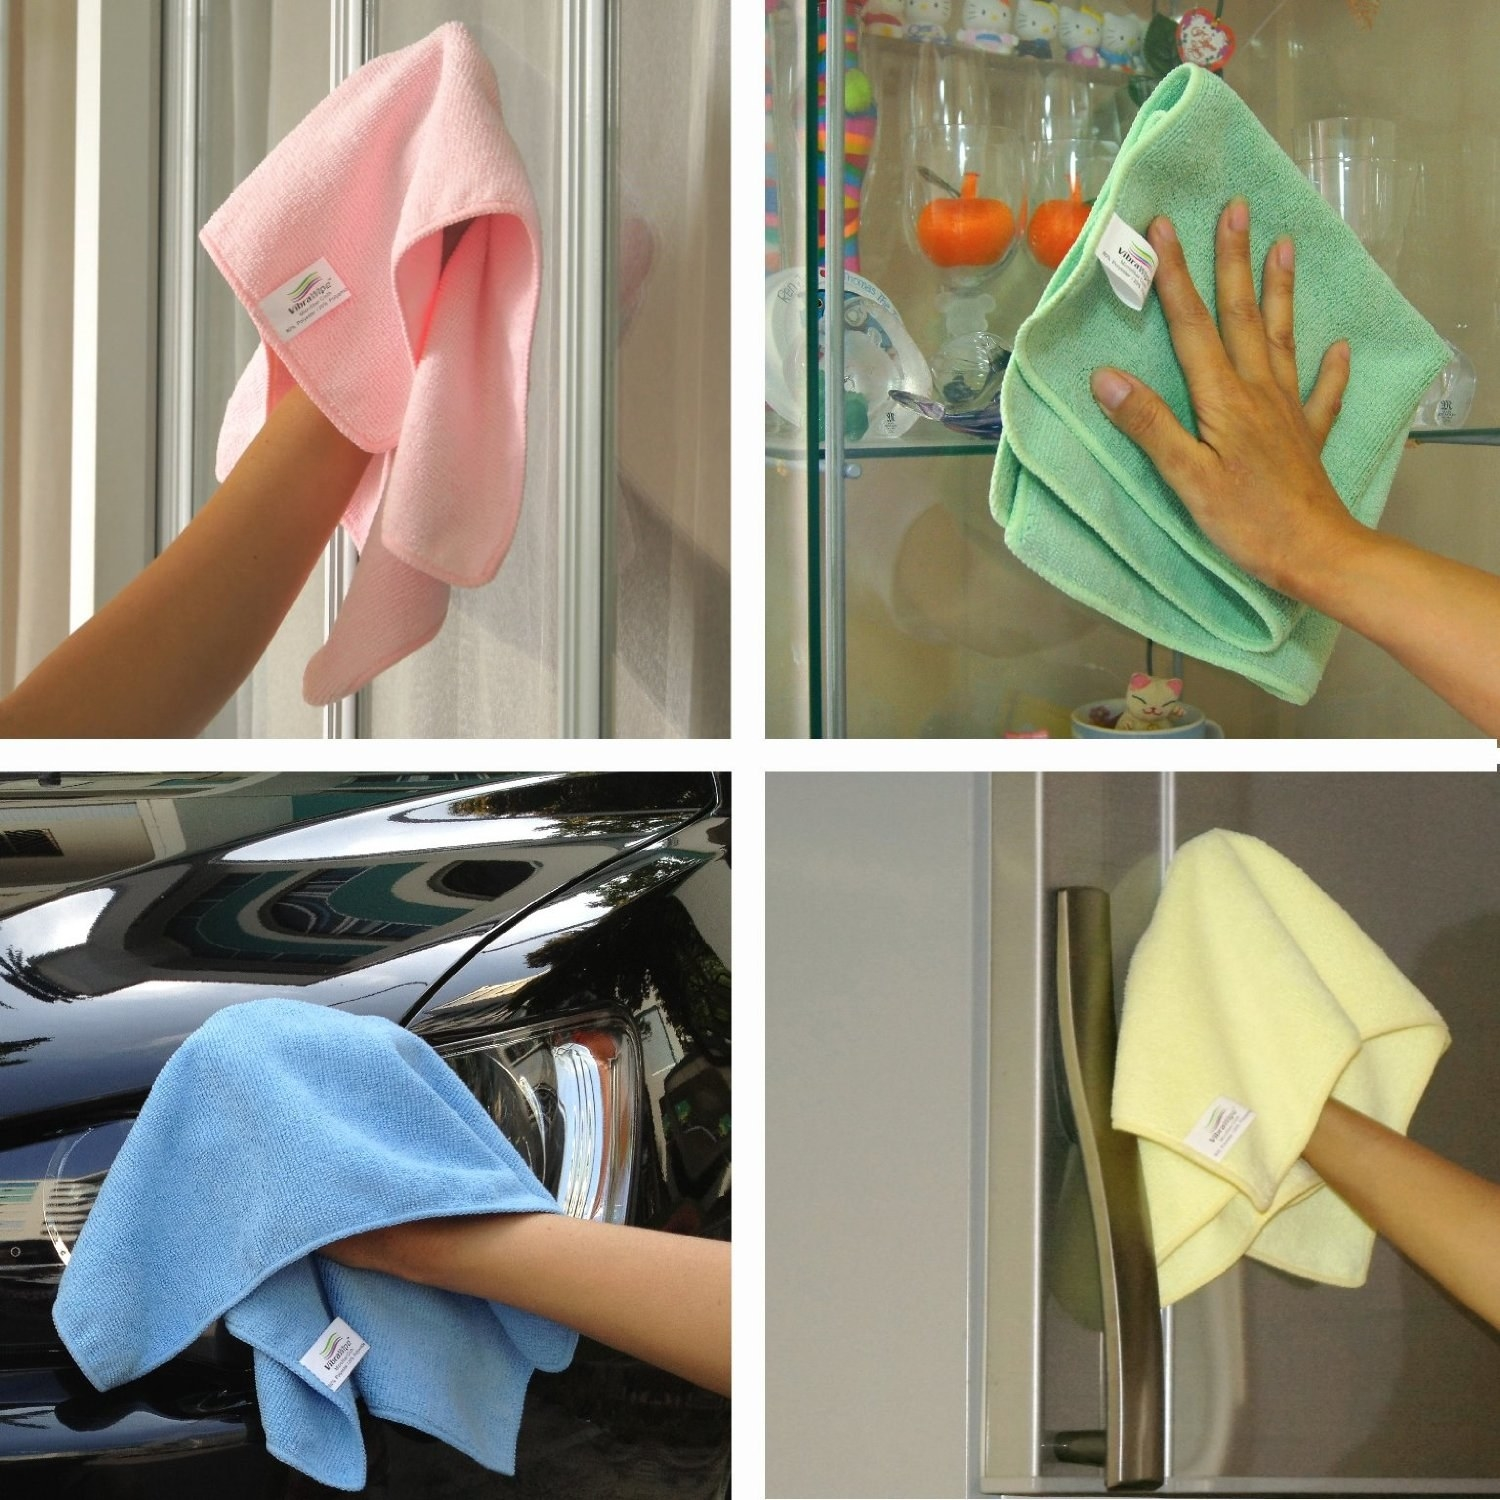 A collage showing the cloths being used on a car, fridge, and glass surface